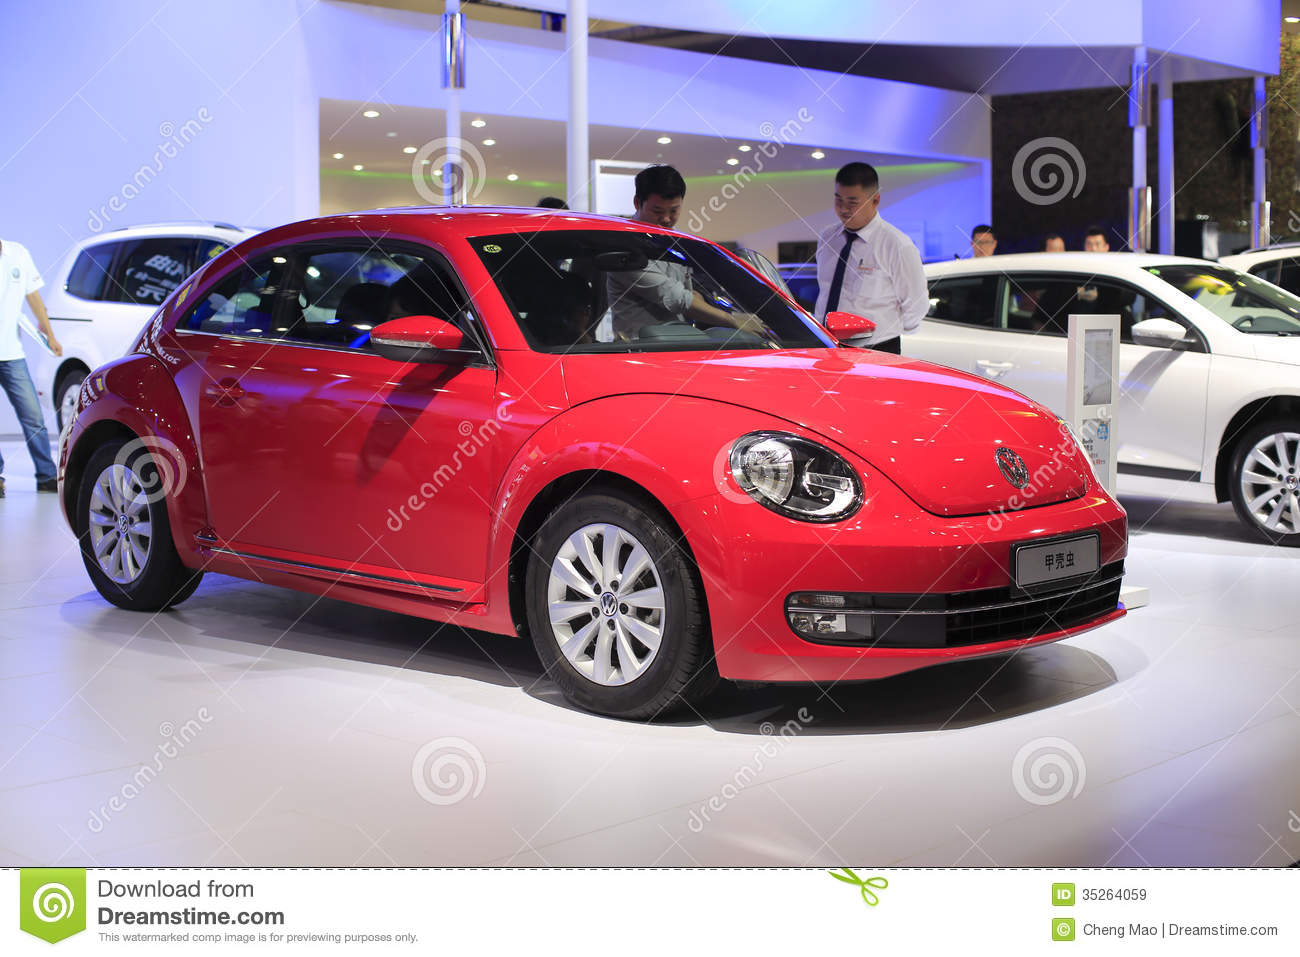 voiture rouge de volkswagen coccinelle image stock ditorial image 35264059. Black Bedroom Furniture Sets. Home Design Ideas